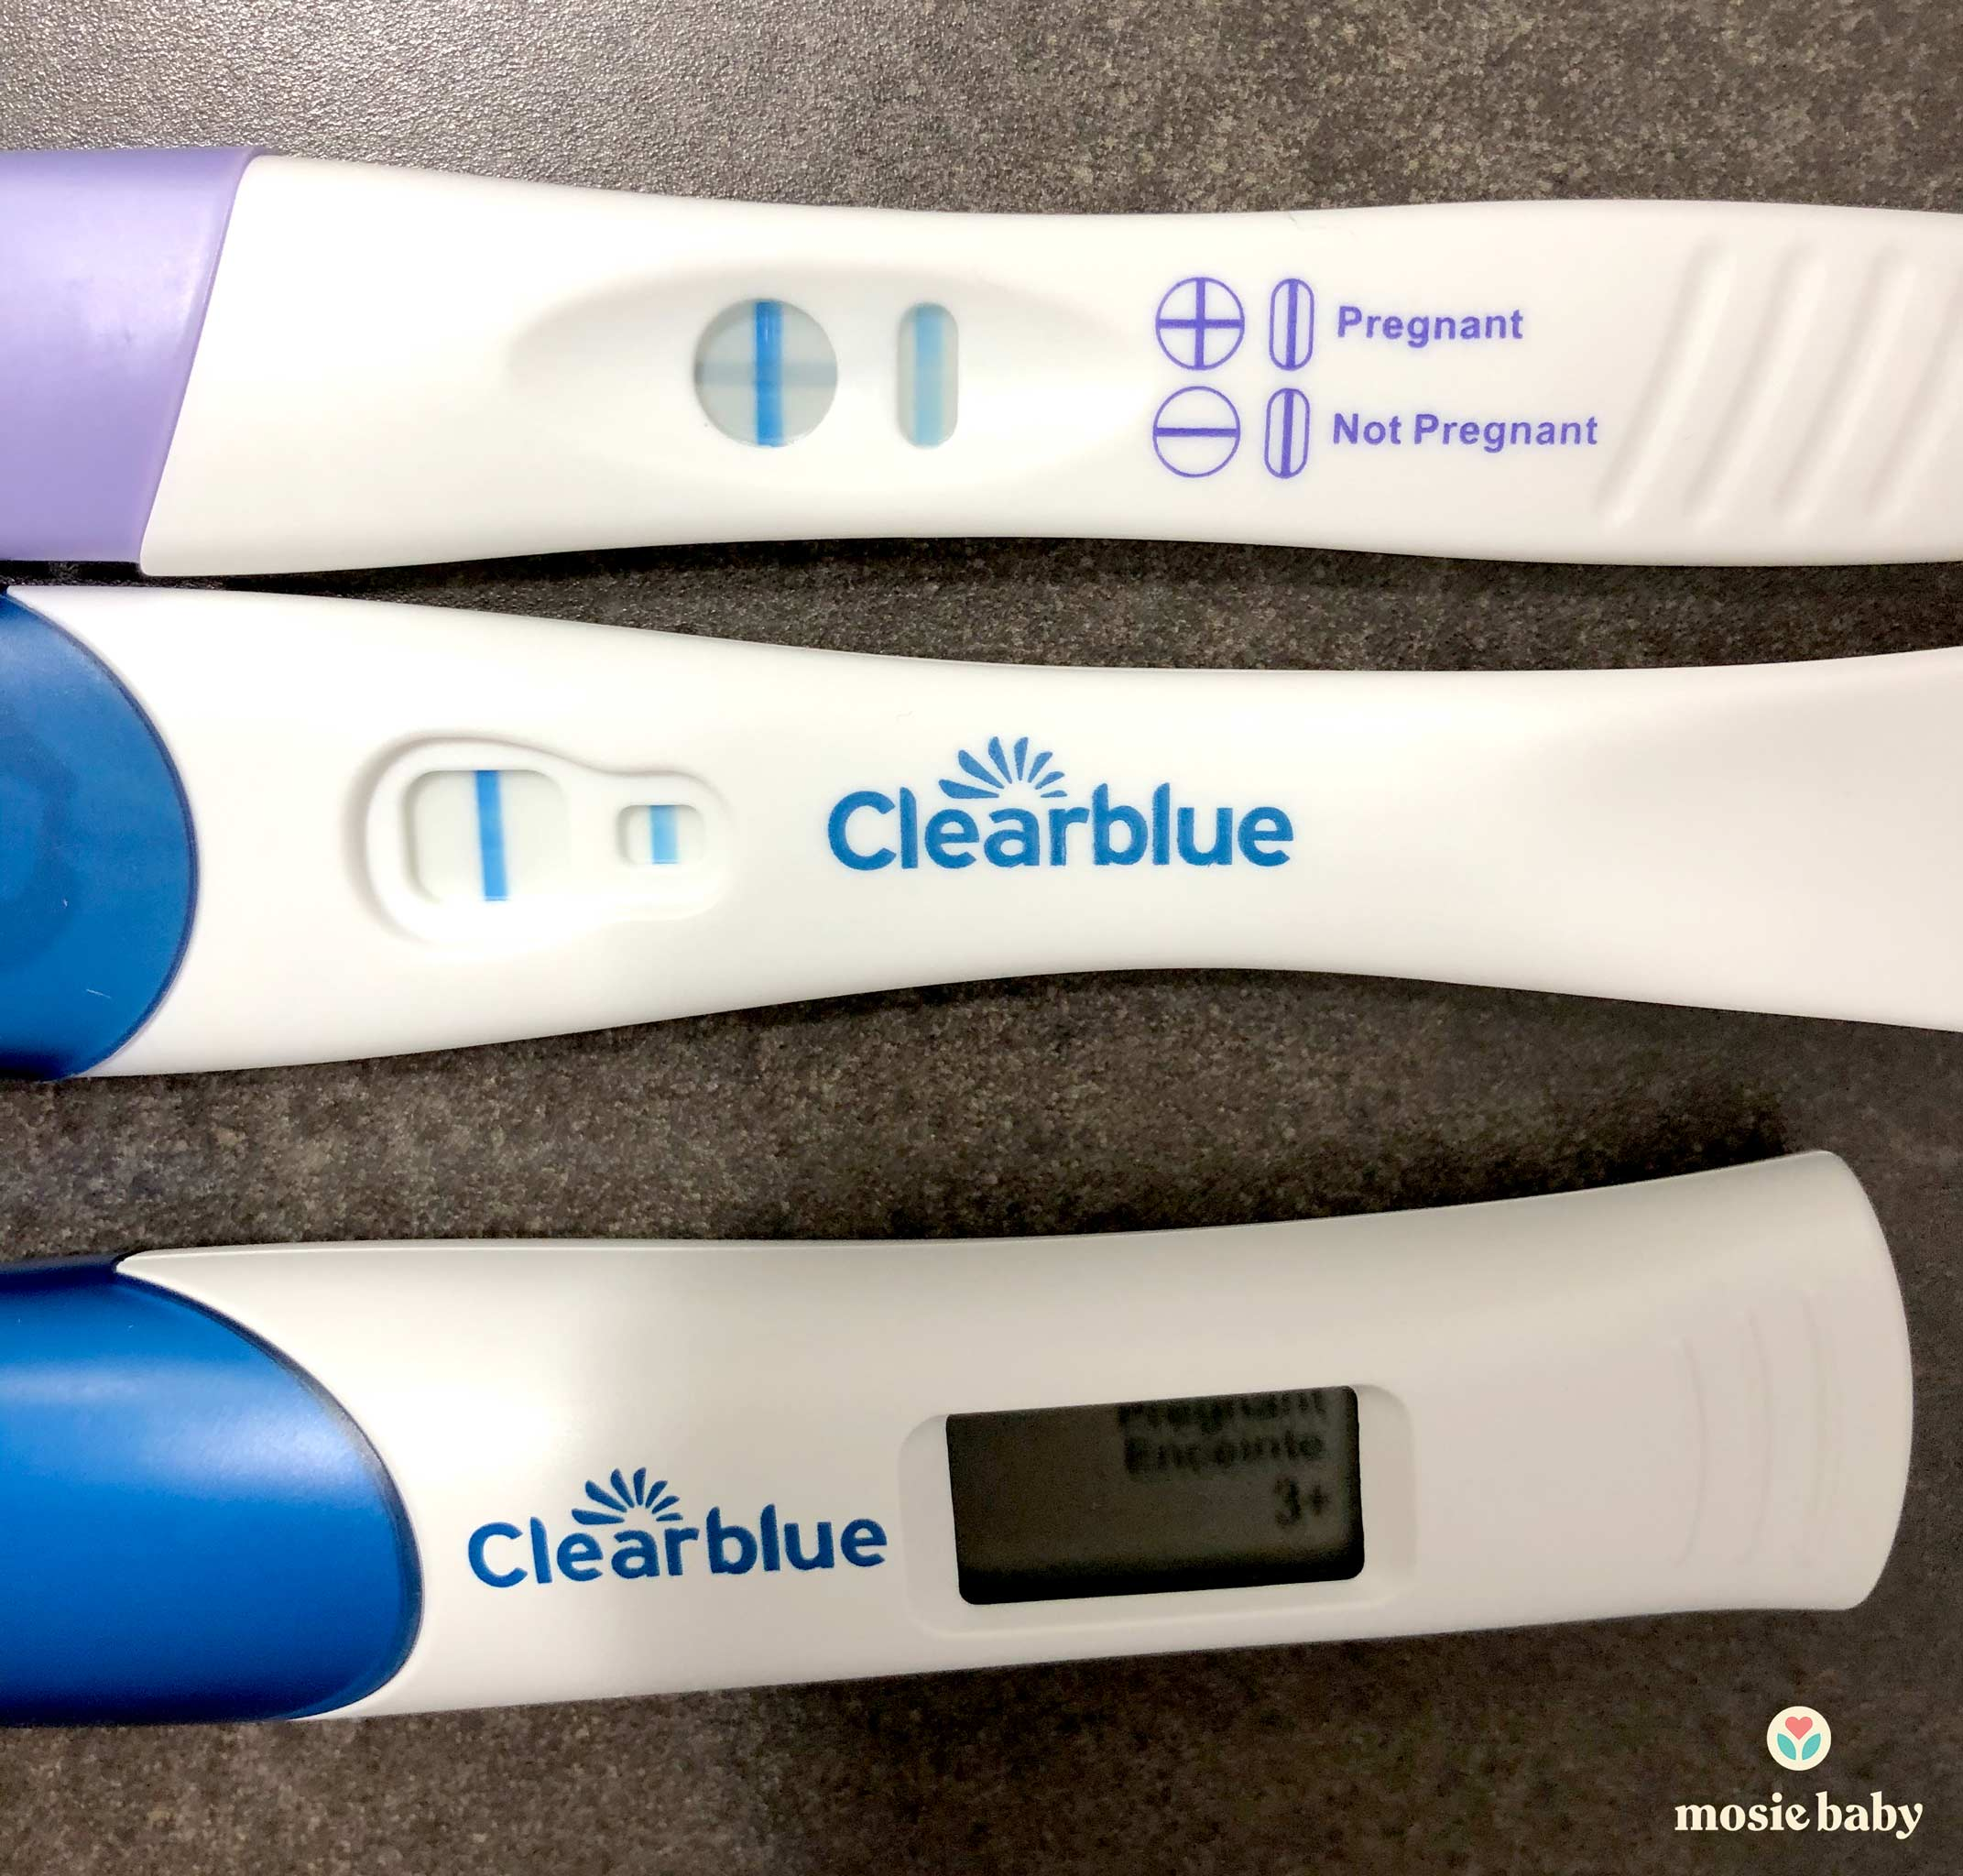 Three positive pregnancy tests